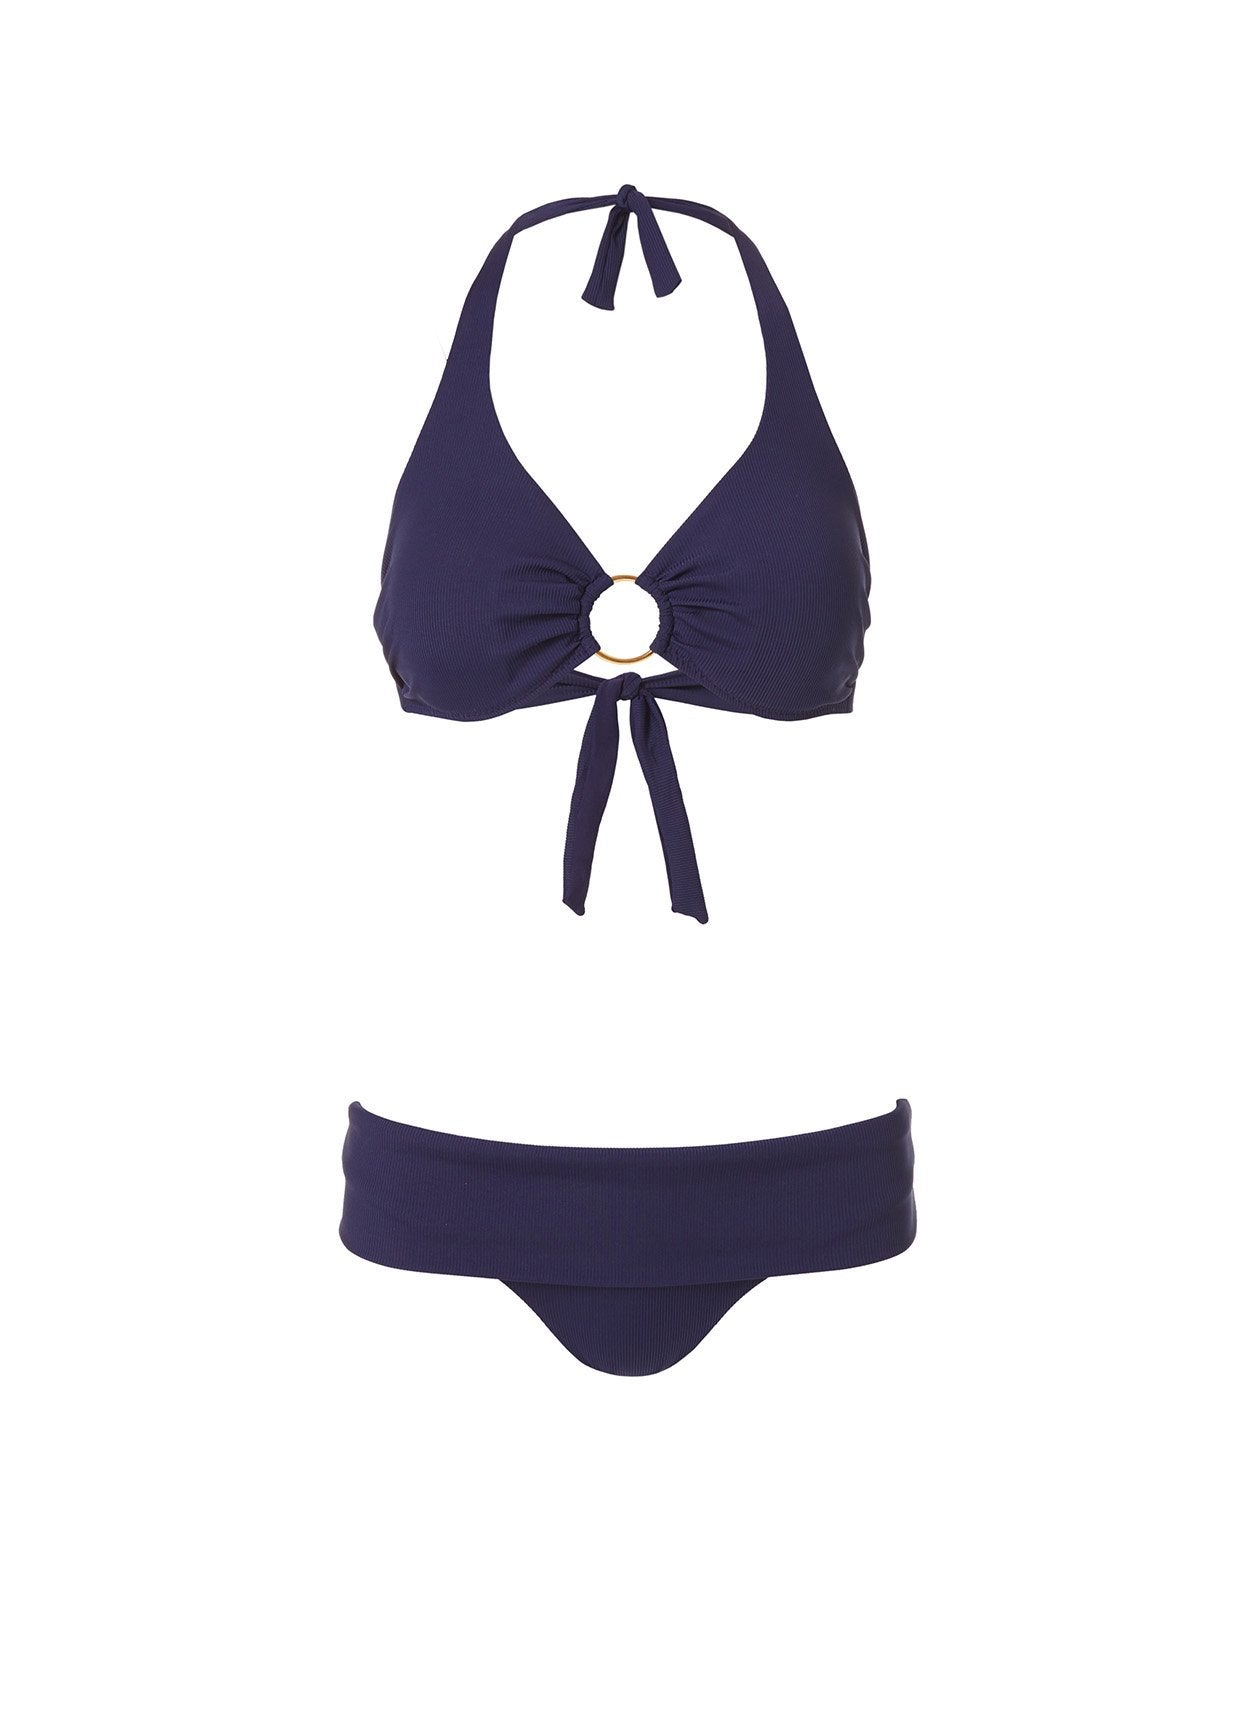 Brussels Navy Ribbed Supportive Underwire Halterneck Bikini 2020